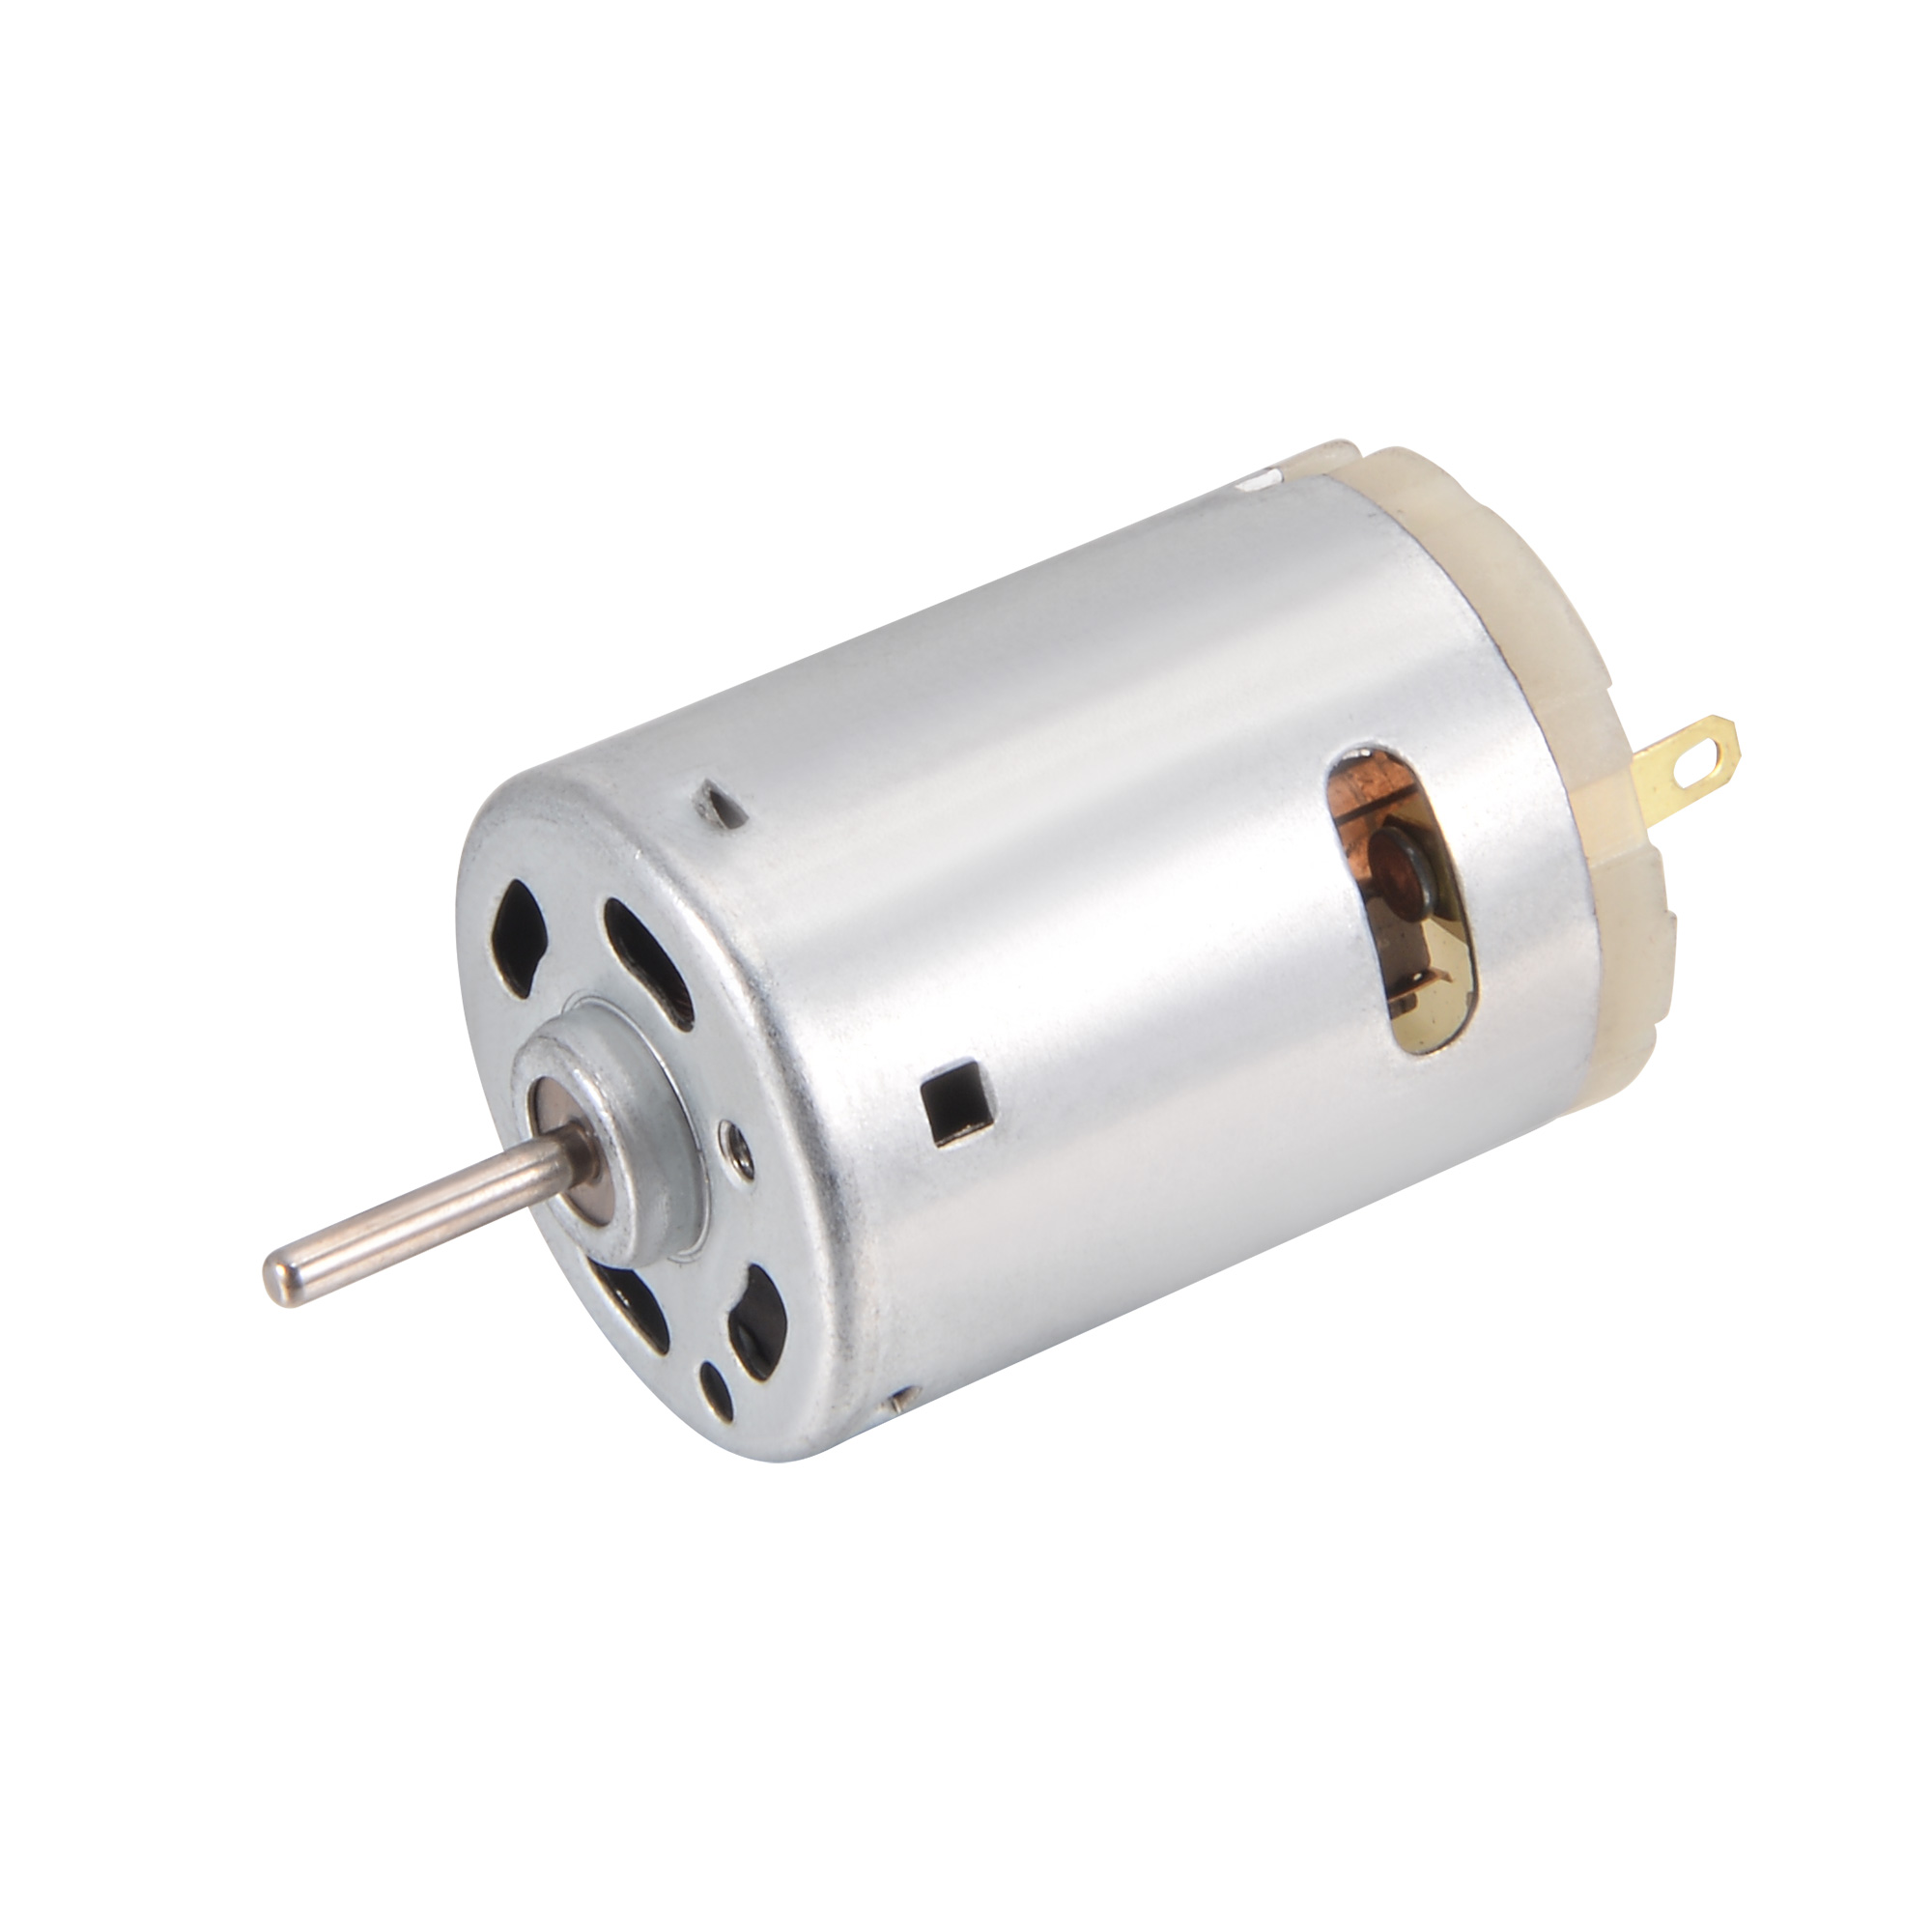 Uxcell(R) DC 12V 10000RPM Mini Magnetic Motor for Smart Cars DIY Toys - image 4 of 4